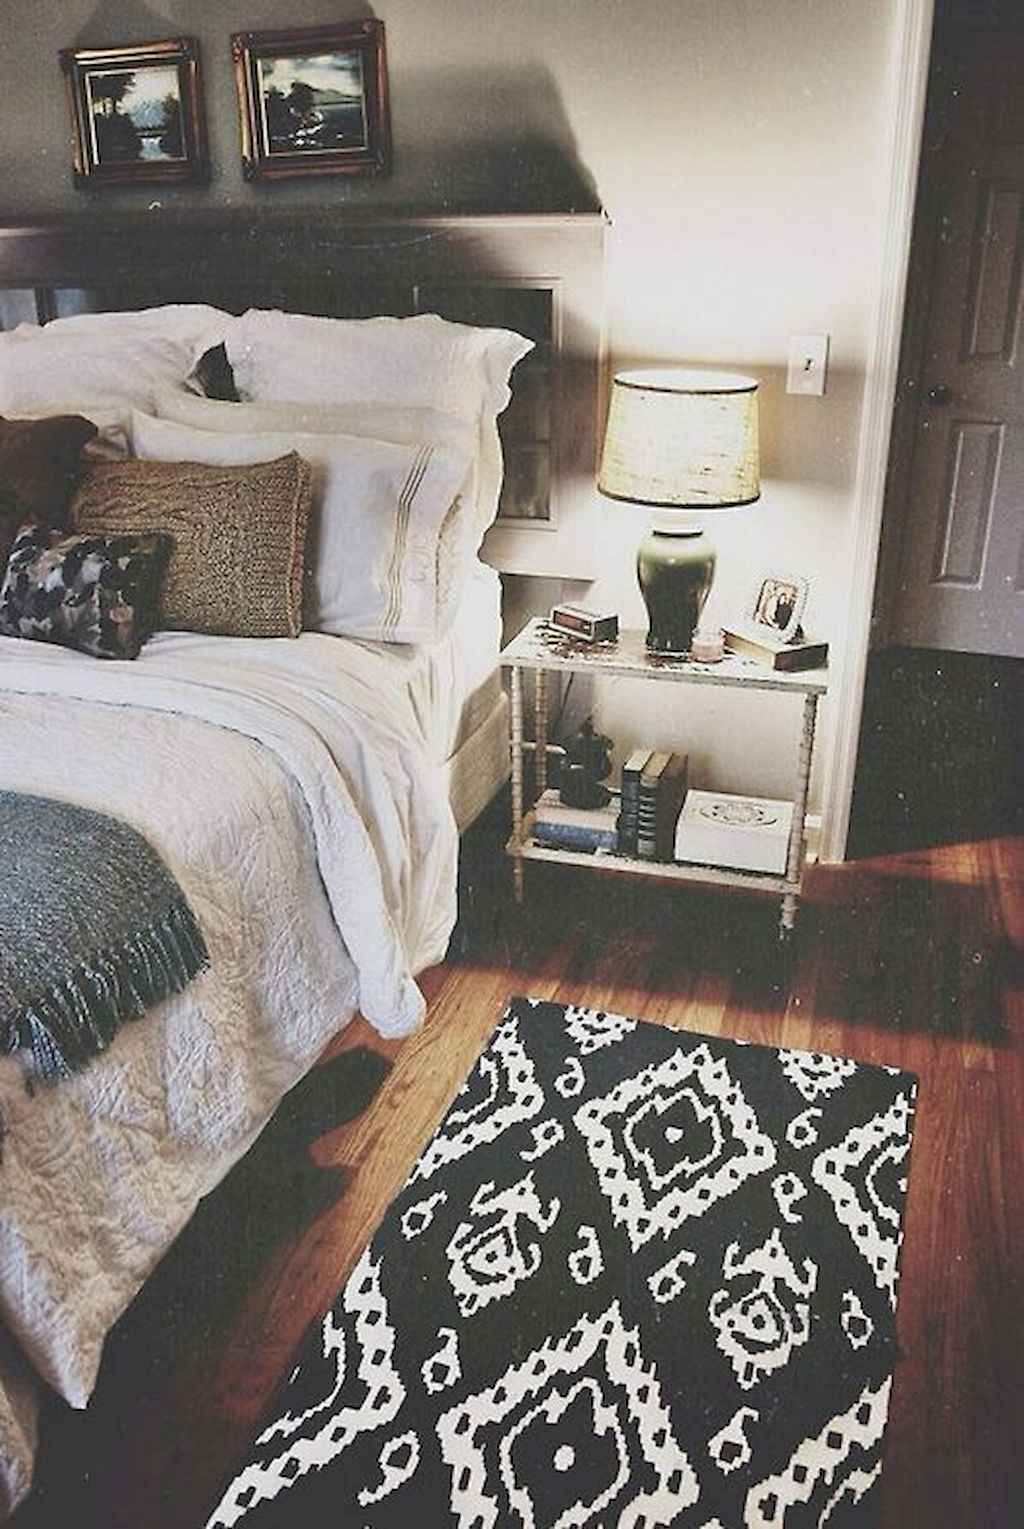 Cozy apartment decorating ideas on a budget (55)